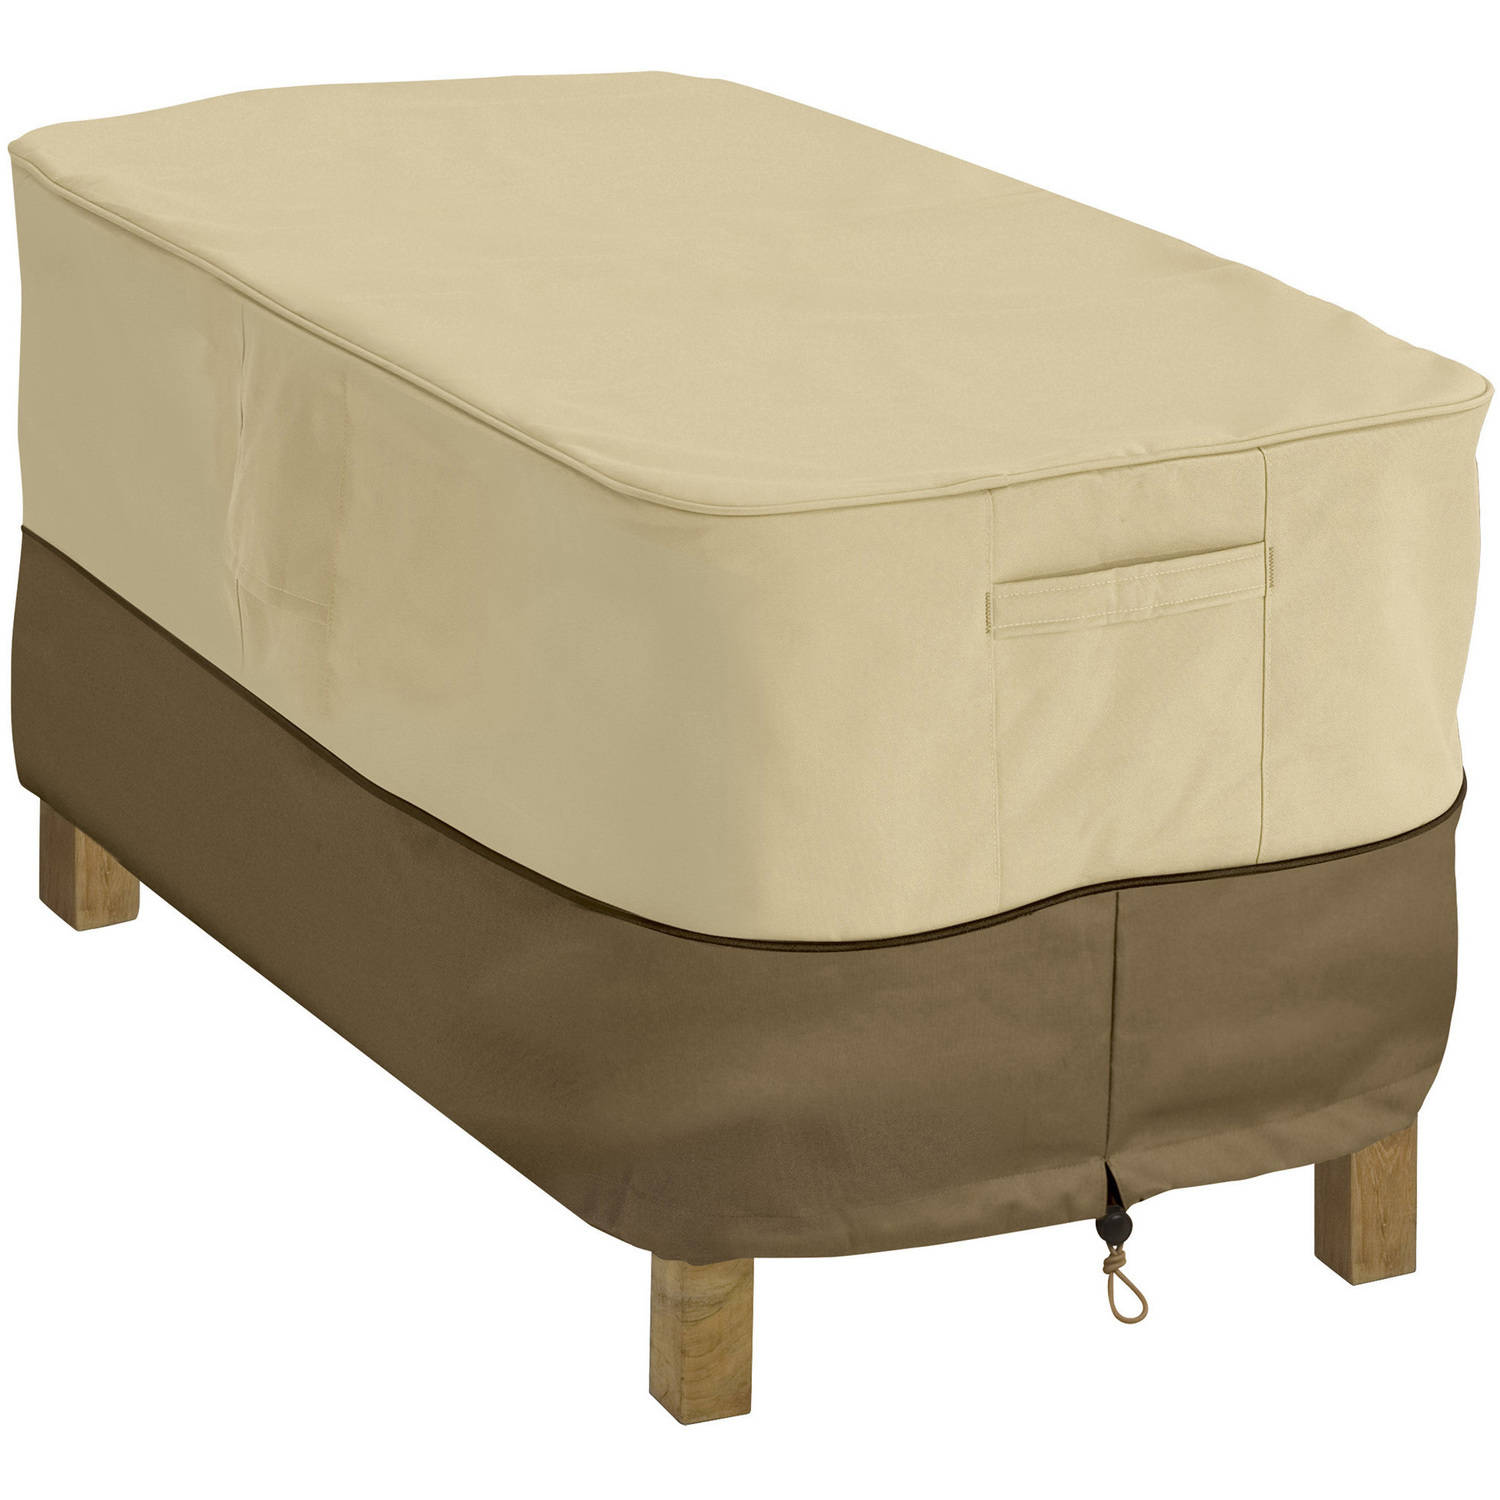 "Classic Accessories Veranda Patio Coffee Table Cover, fits up to 48""L x 25""W"